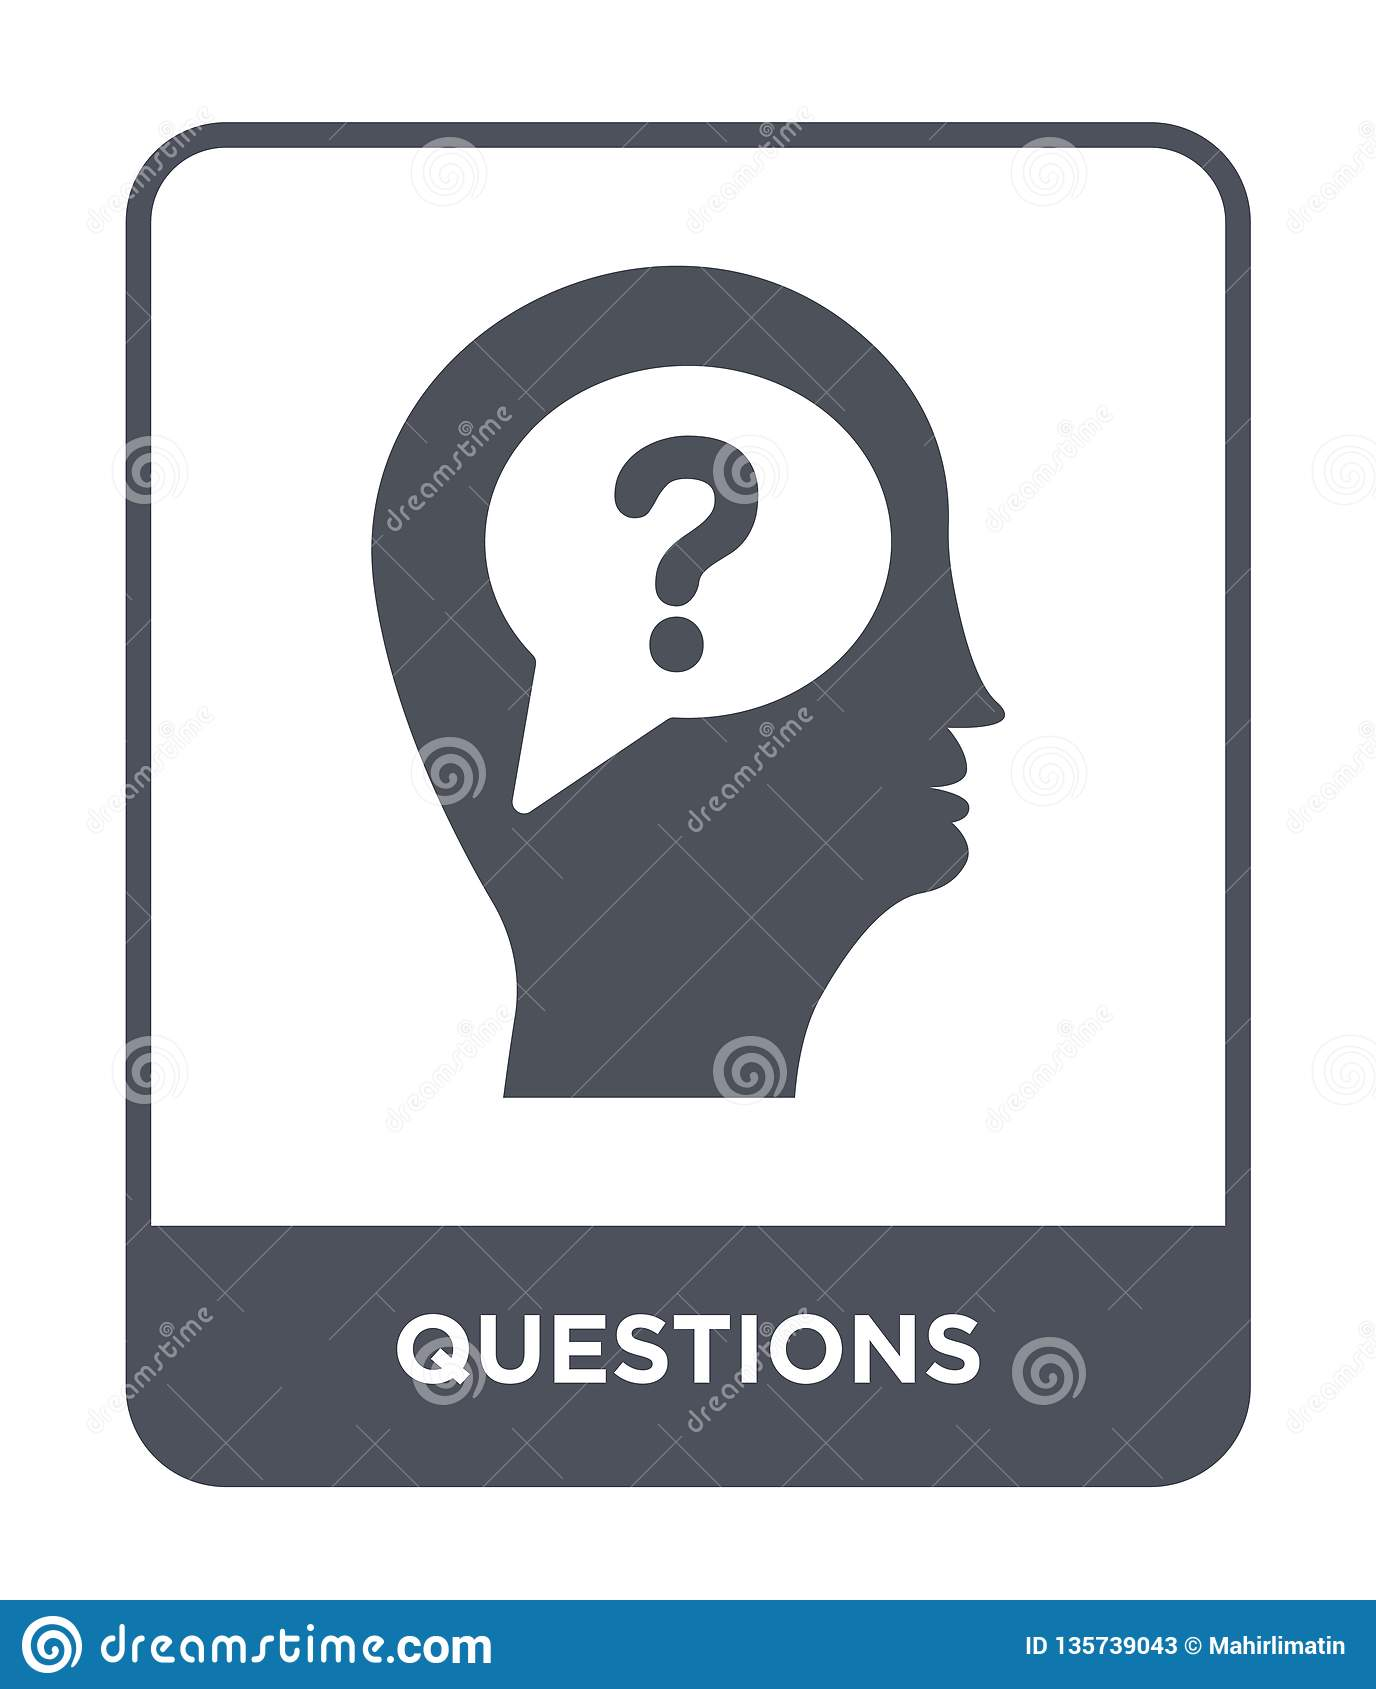 questions icon in trendy design style. questions icon isolated on white background. questions vector icon simple and modern flat